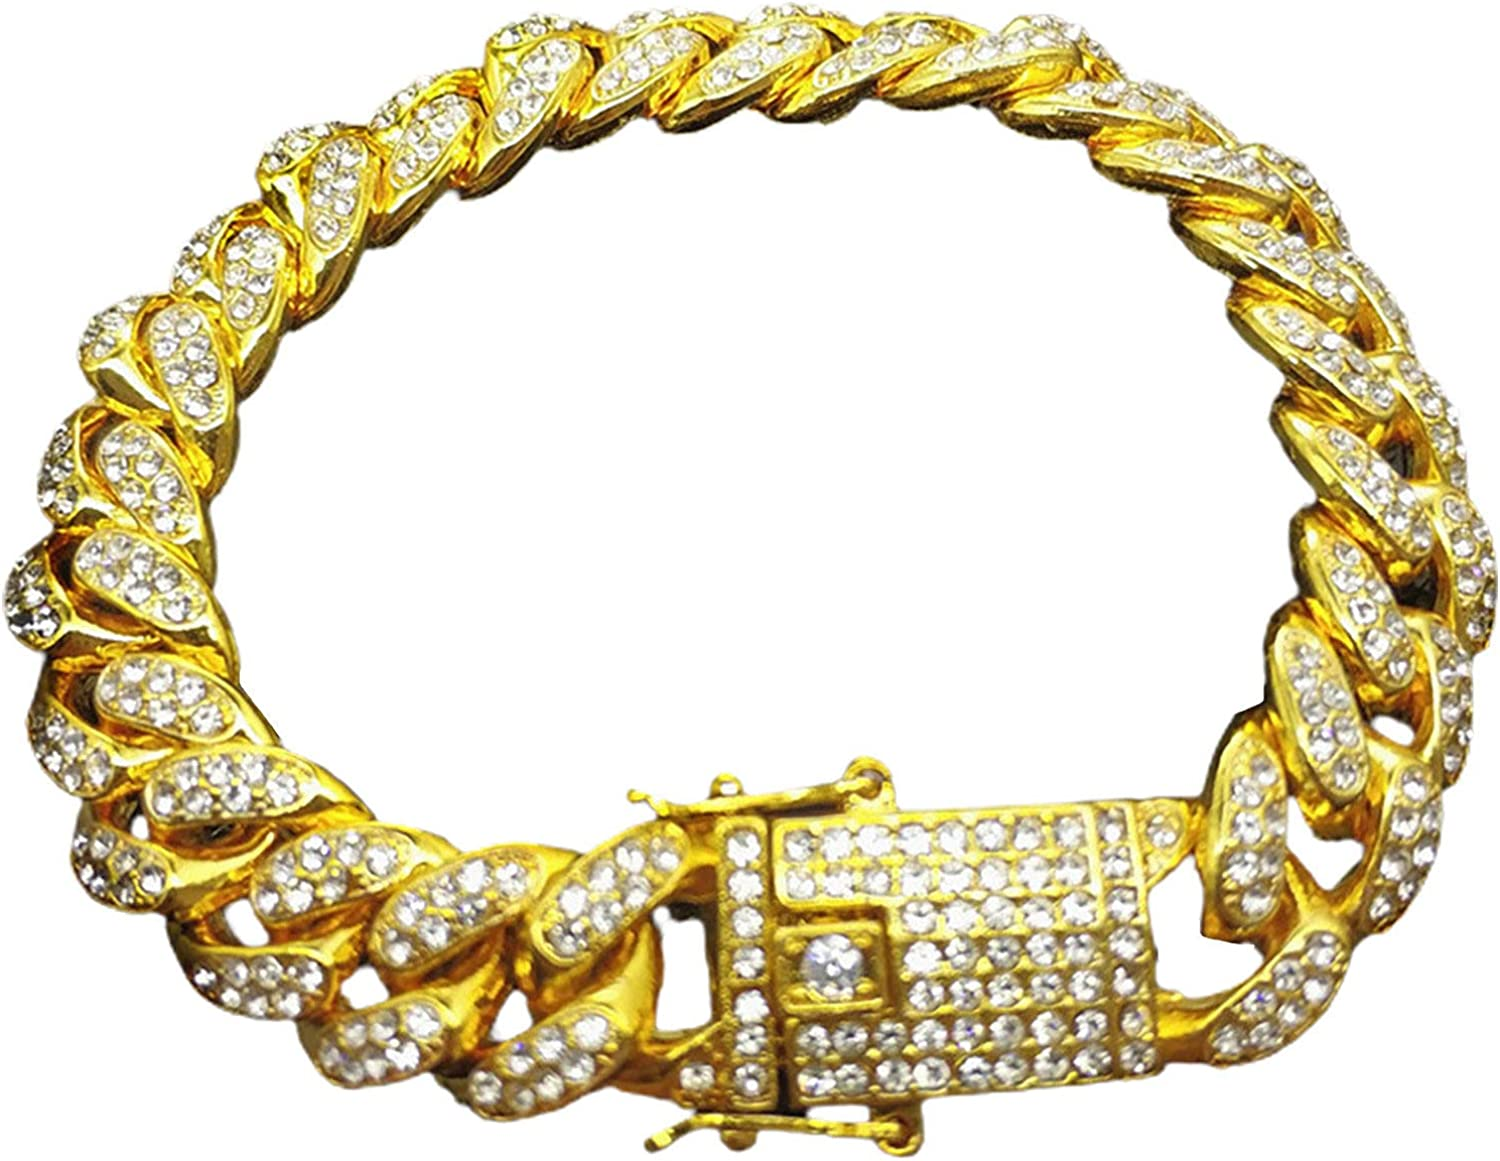 Hip Genuine Hop Men Cuban Link Chain Rhinestone Shiny Inlaid Ba Spring new work one after another Bracelet